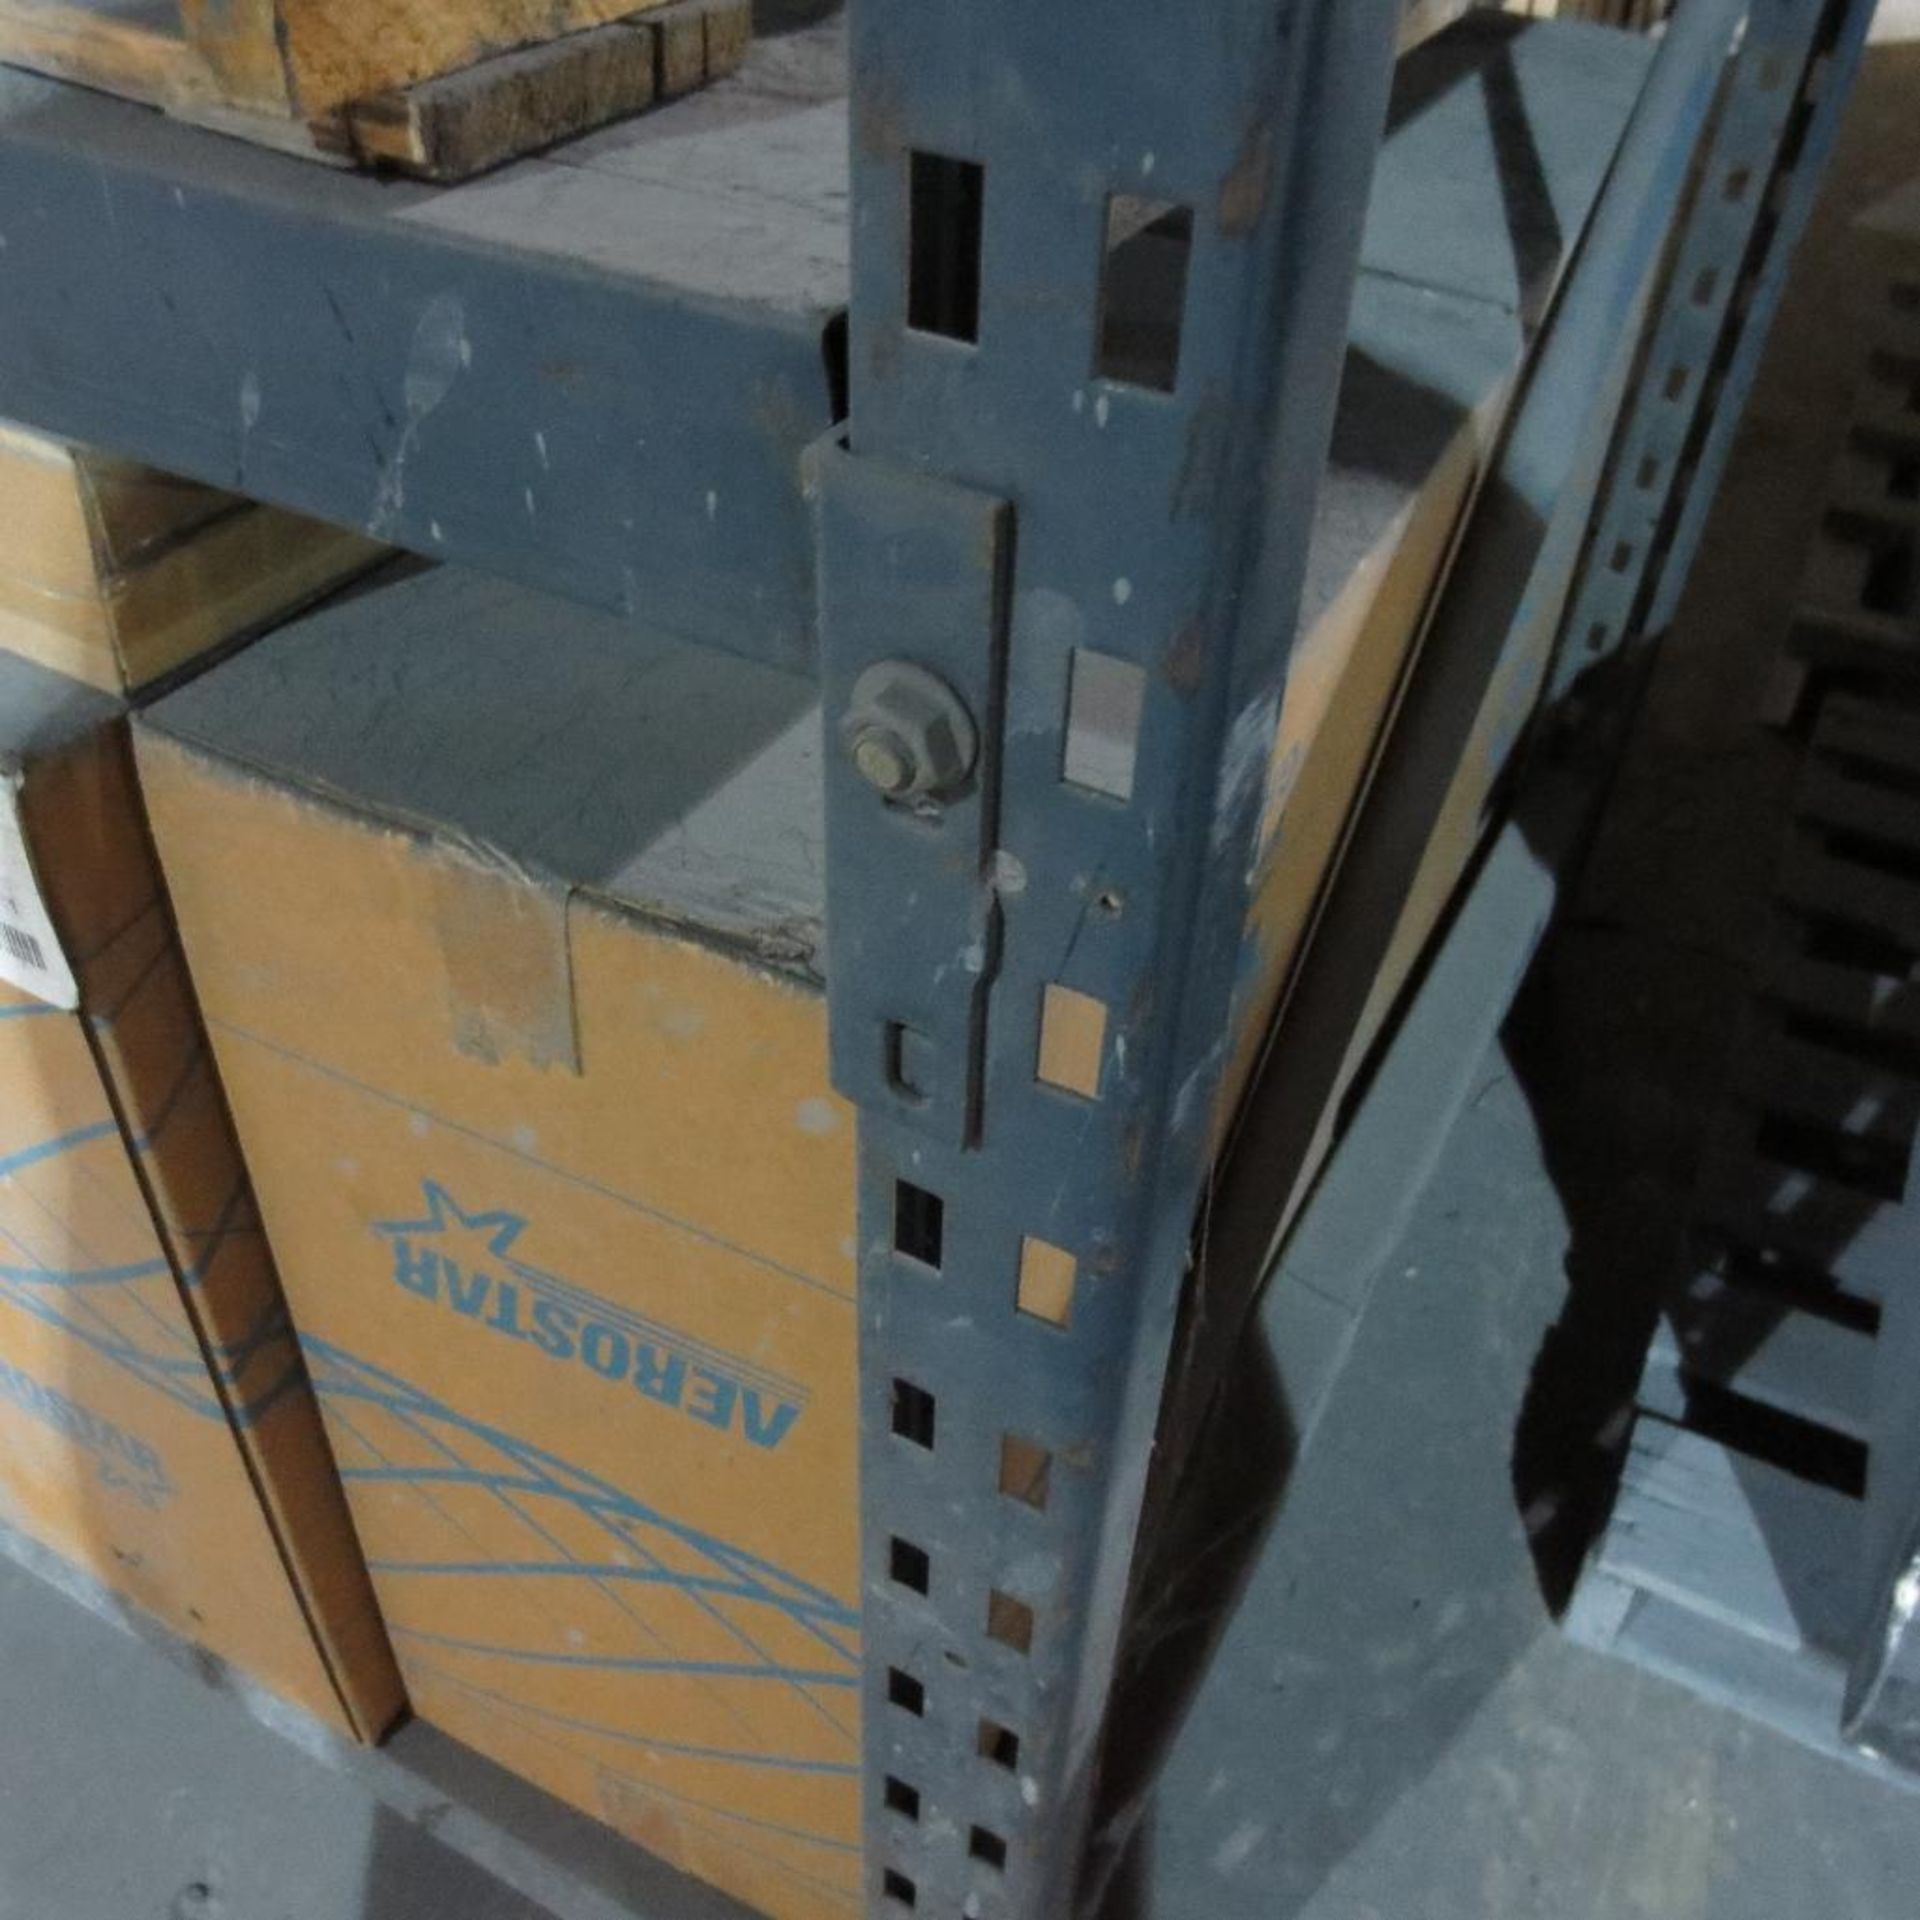 Lot 31 - Section of Pallet Racking containing (2) 14' X 4' Legs and (8) 8' Cross Beams